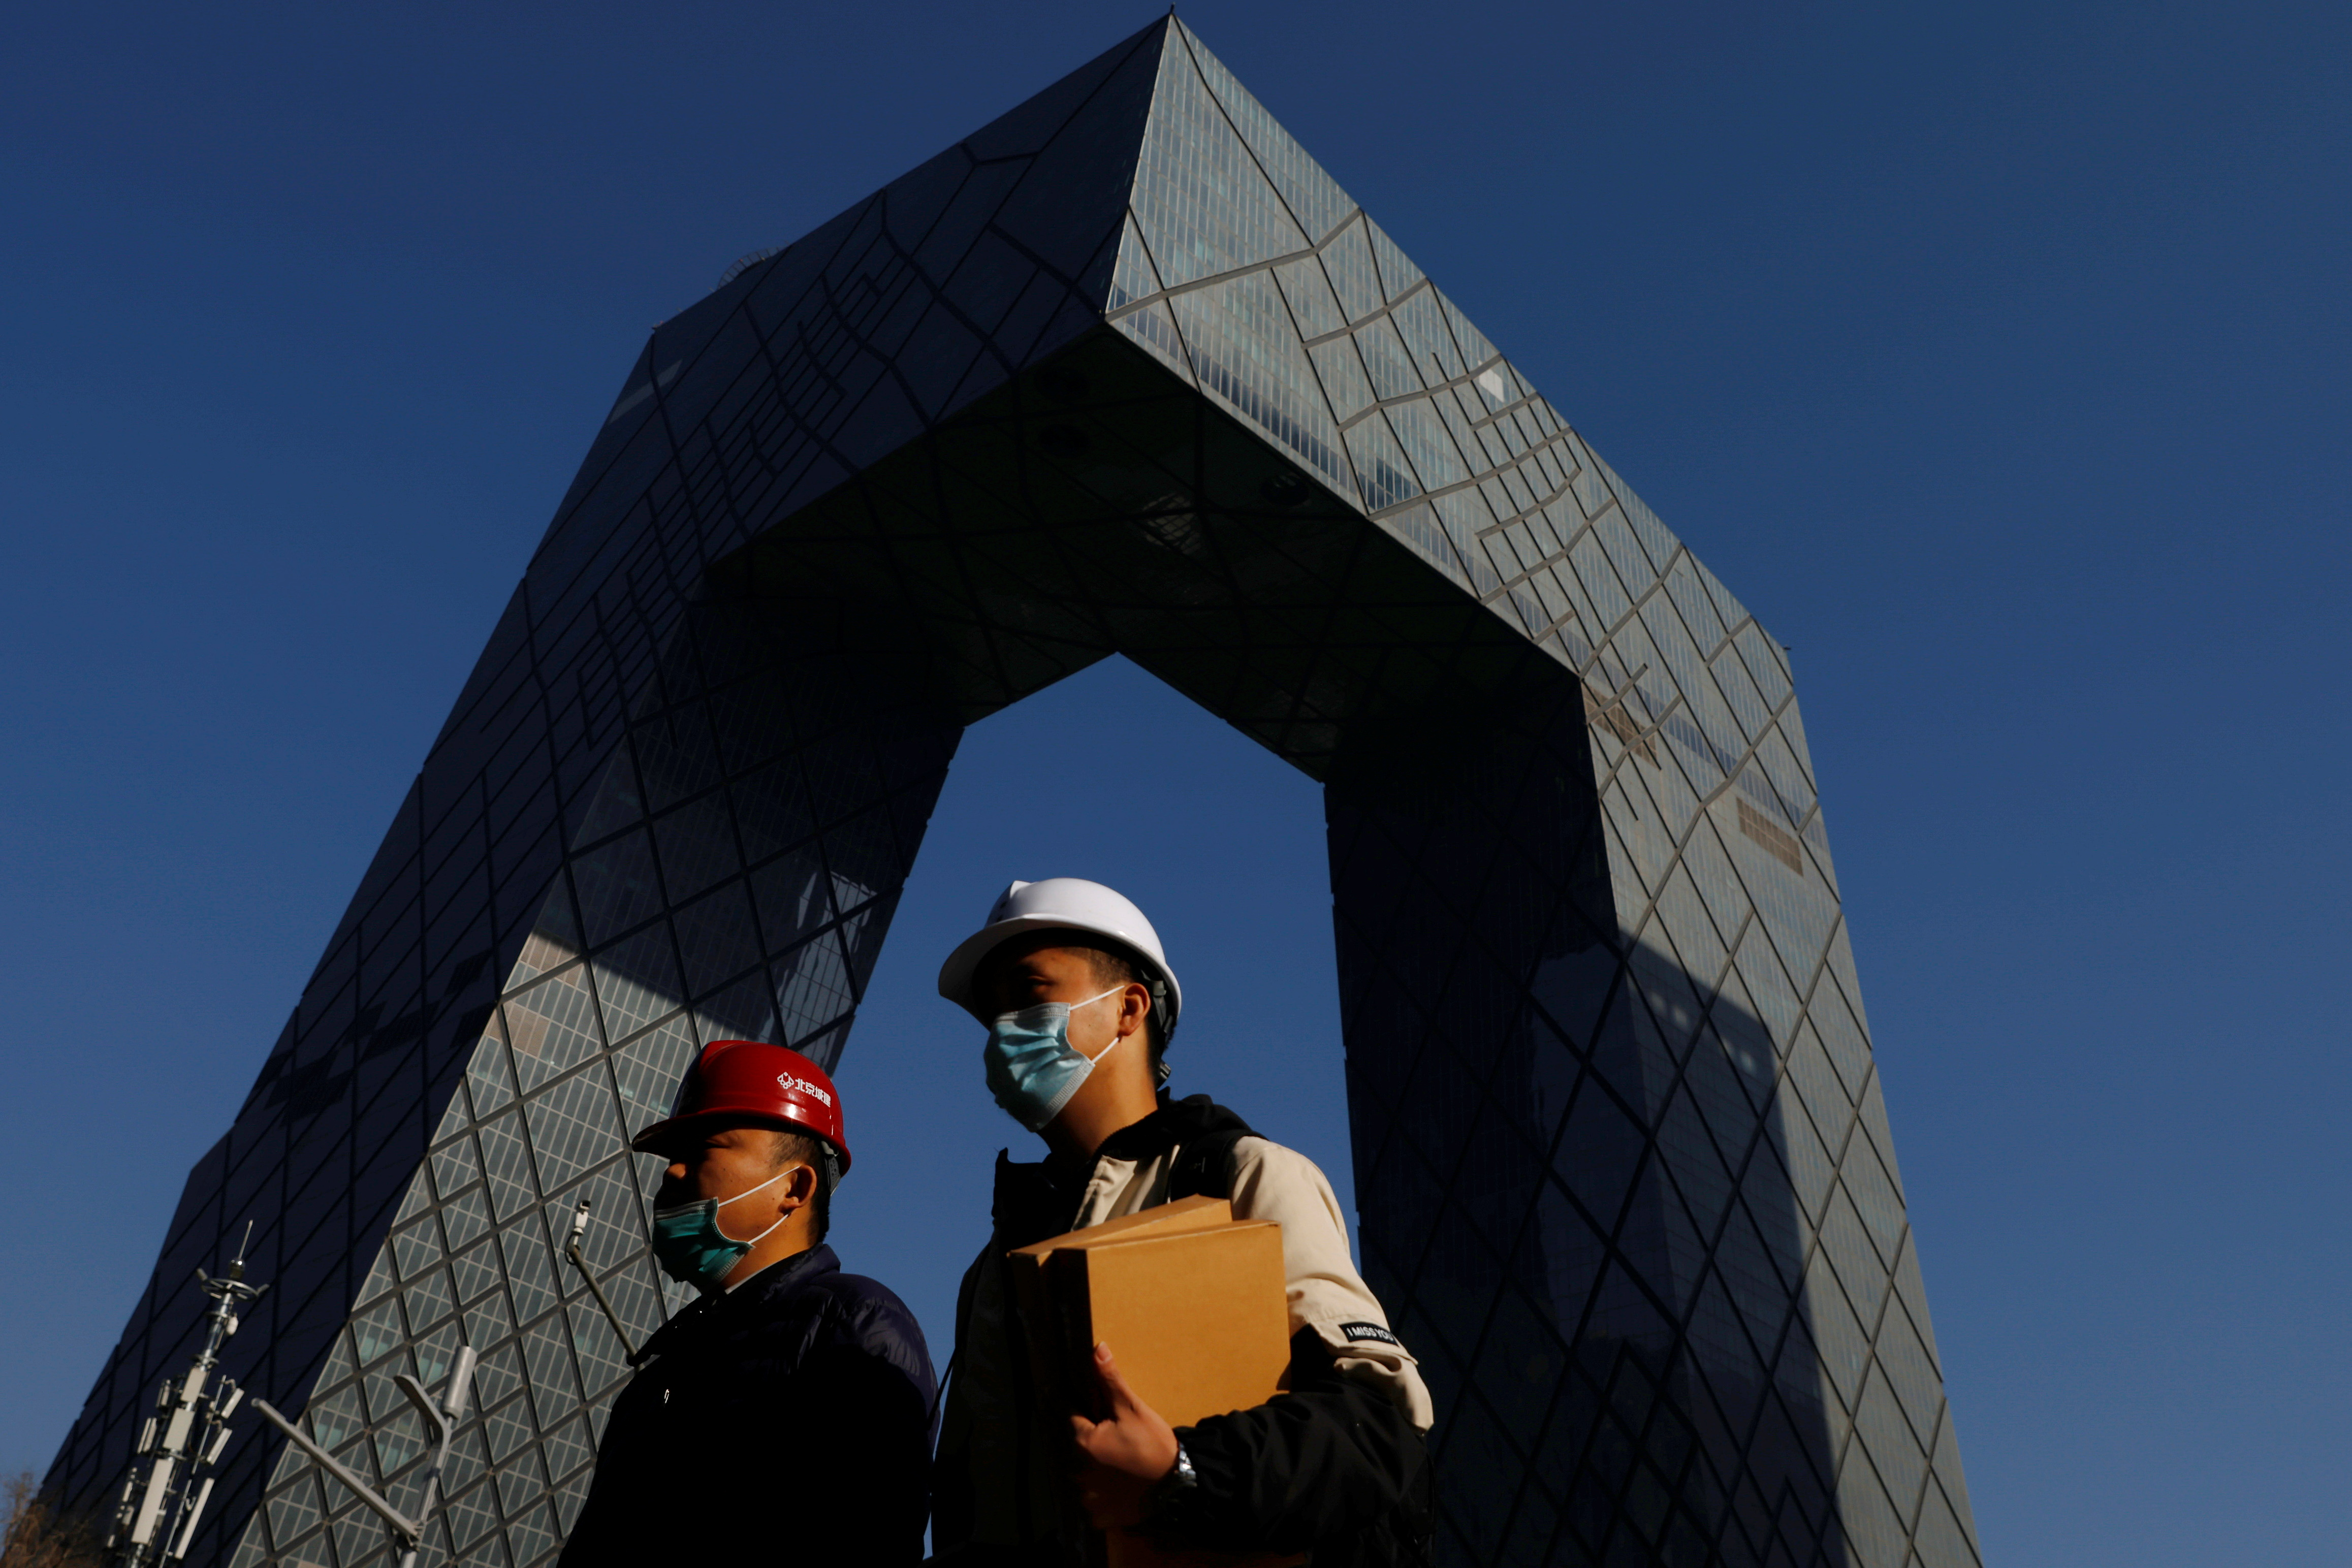 People wearing face masks following the coronavirus disease (COVID-19) outbreak walk past the CCTV headquarters, the home of Chinese state media outlet CCTV and its English-language sister channel CGTN, in Beijing, China February 5, 2021. REUTERS/Carlos Garcia Rawlins/Files